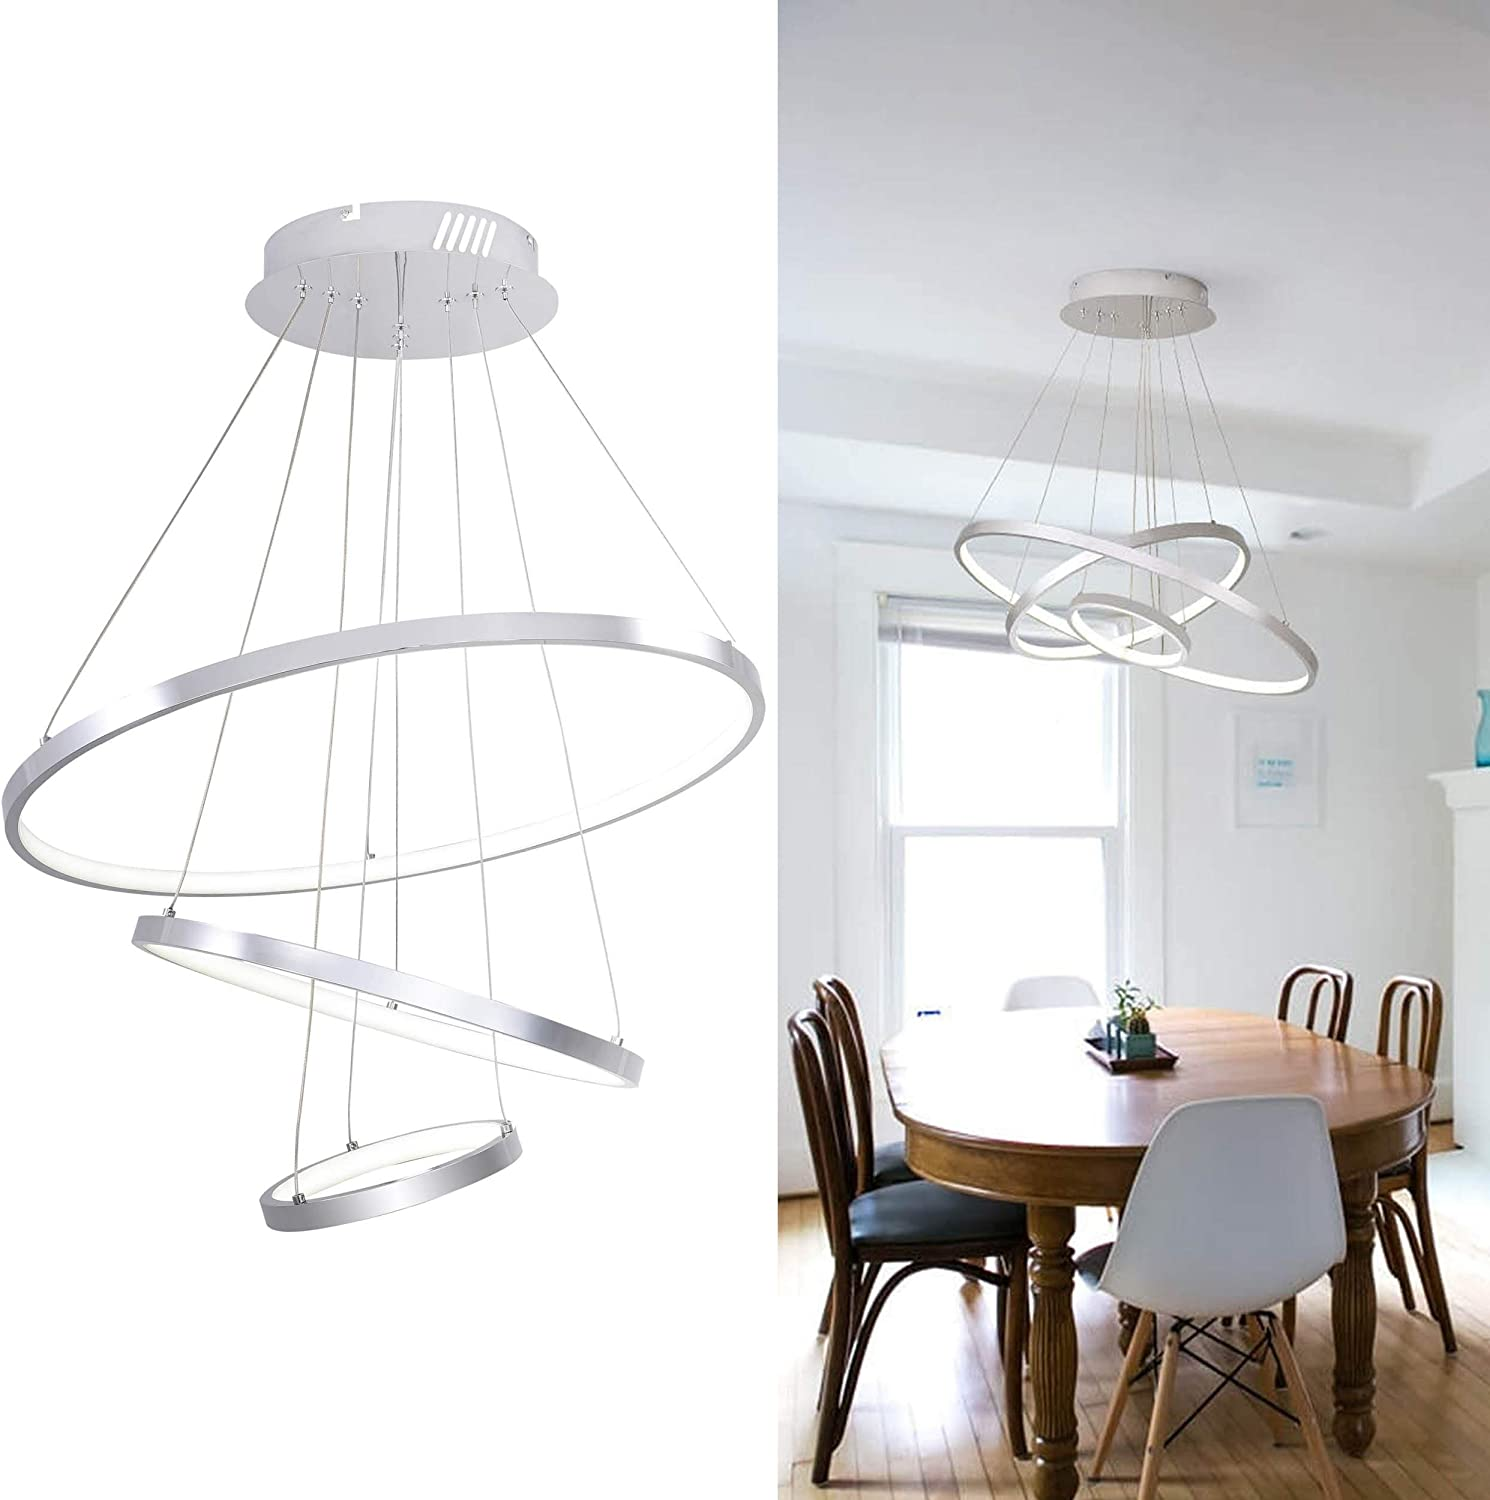 Modern Led Chandeliers For Dining Rooms 60w Super Bright Ceiling Hanging Light Fixtures For Dining Living Room White Wire Drawing Finish Flush Mount Height Adjustable Amazon Com